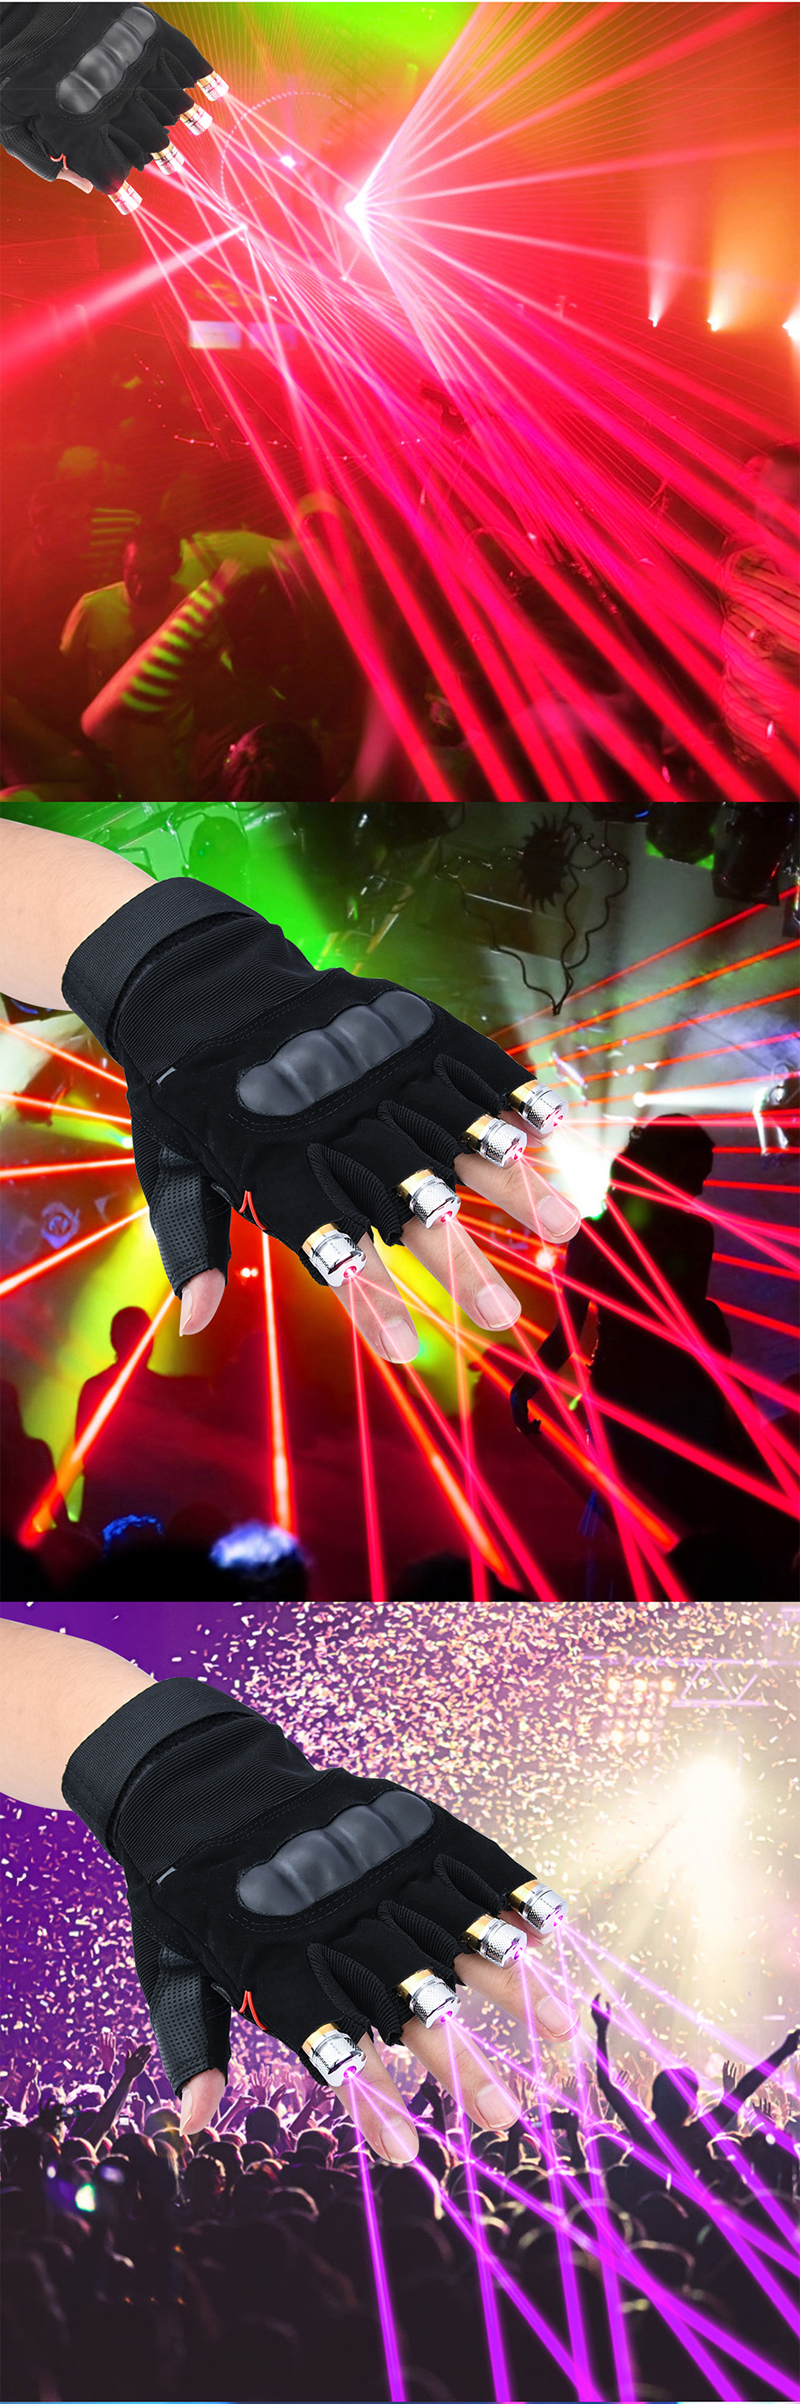 Cool Finger - Laser Gloves - Flashlight - for Party - Concert - Clubbing - Wedding - Birthday - Party - Outdoor Night Activities(18)